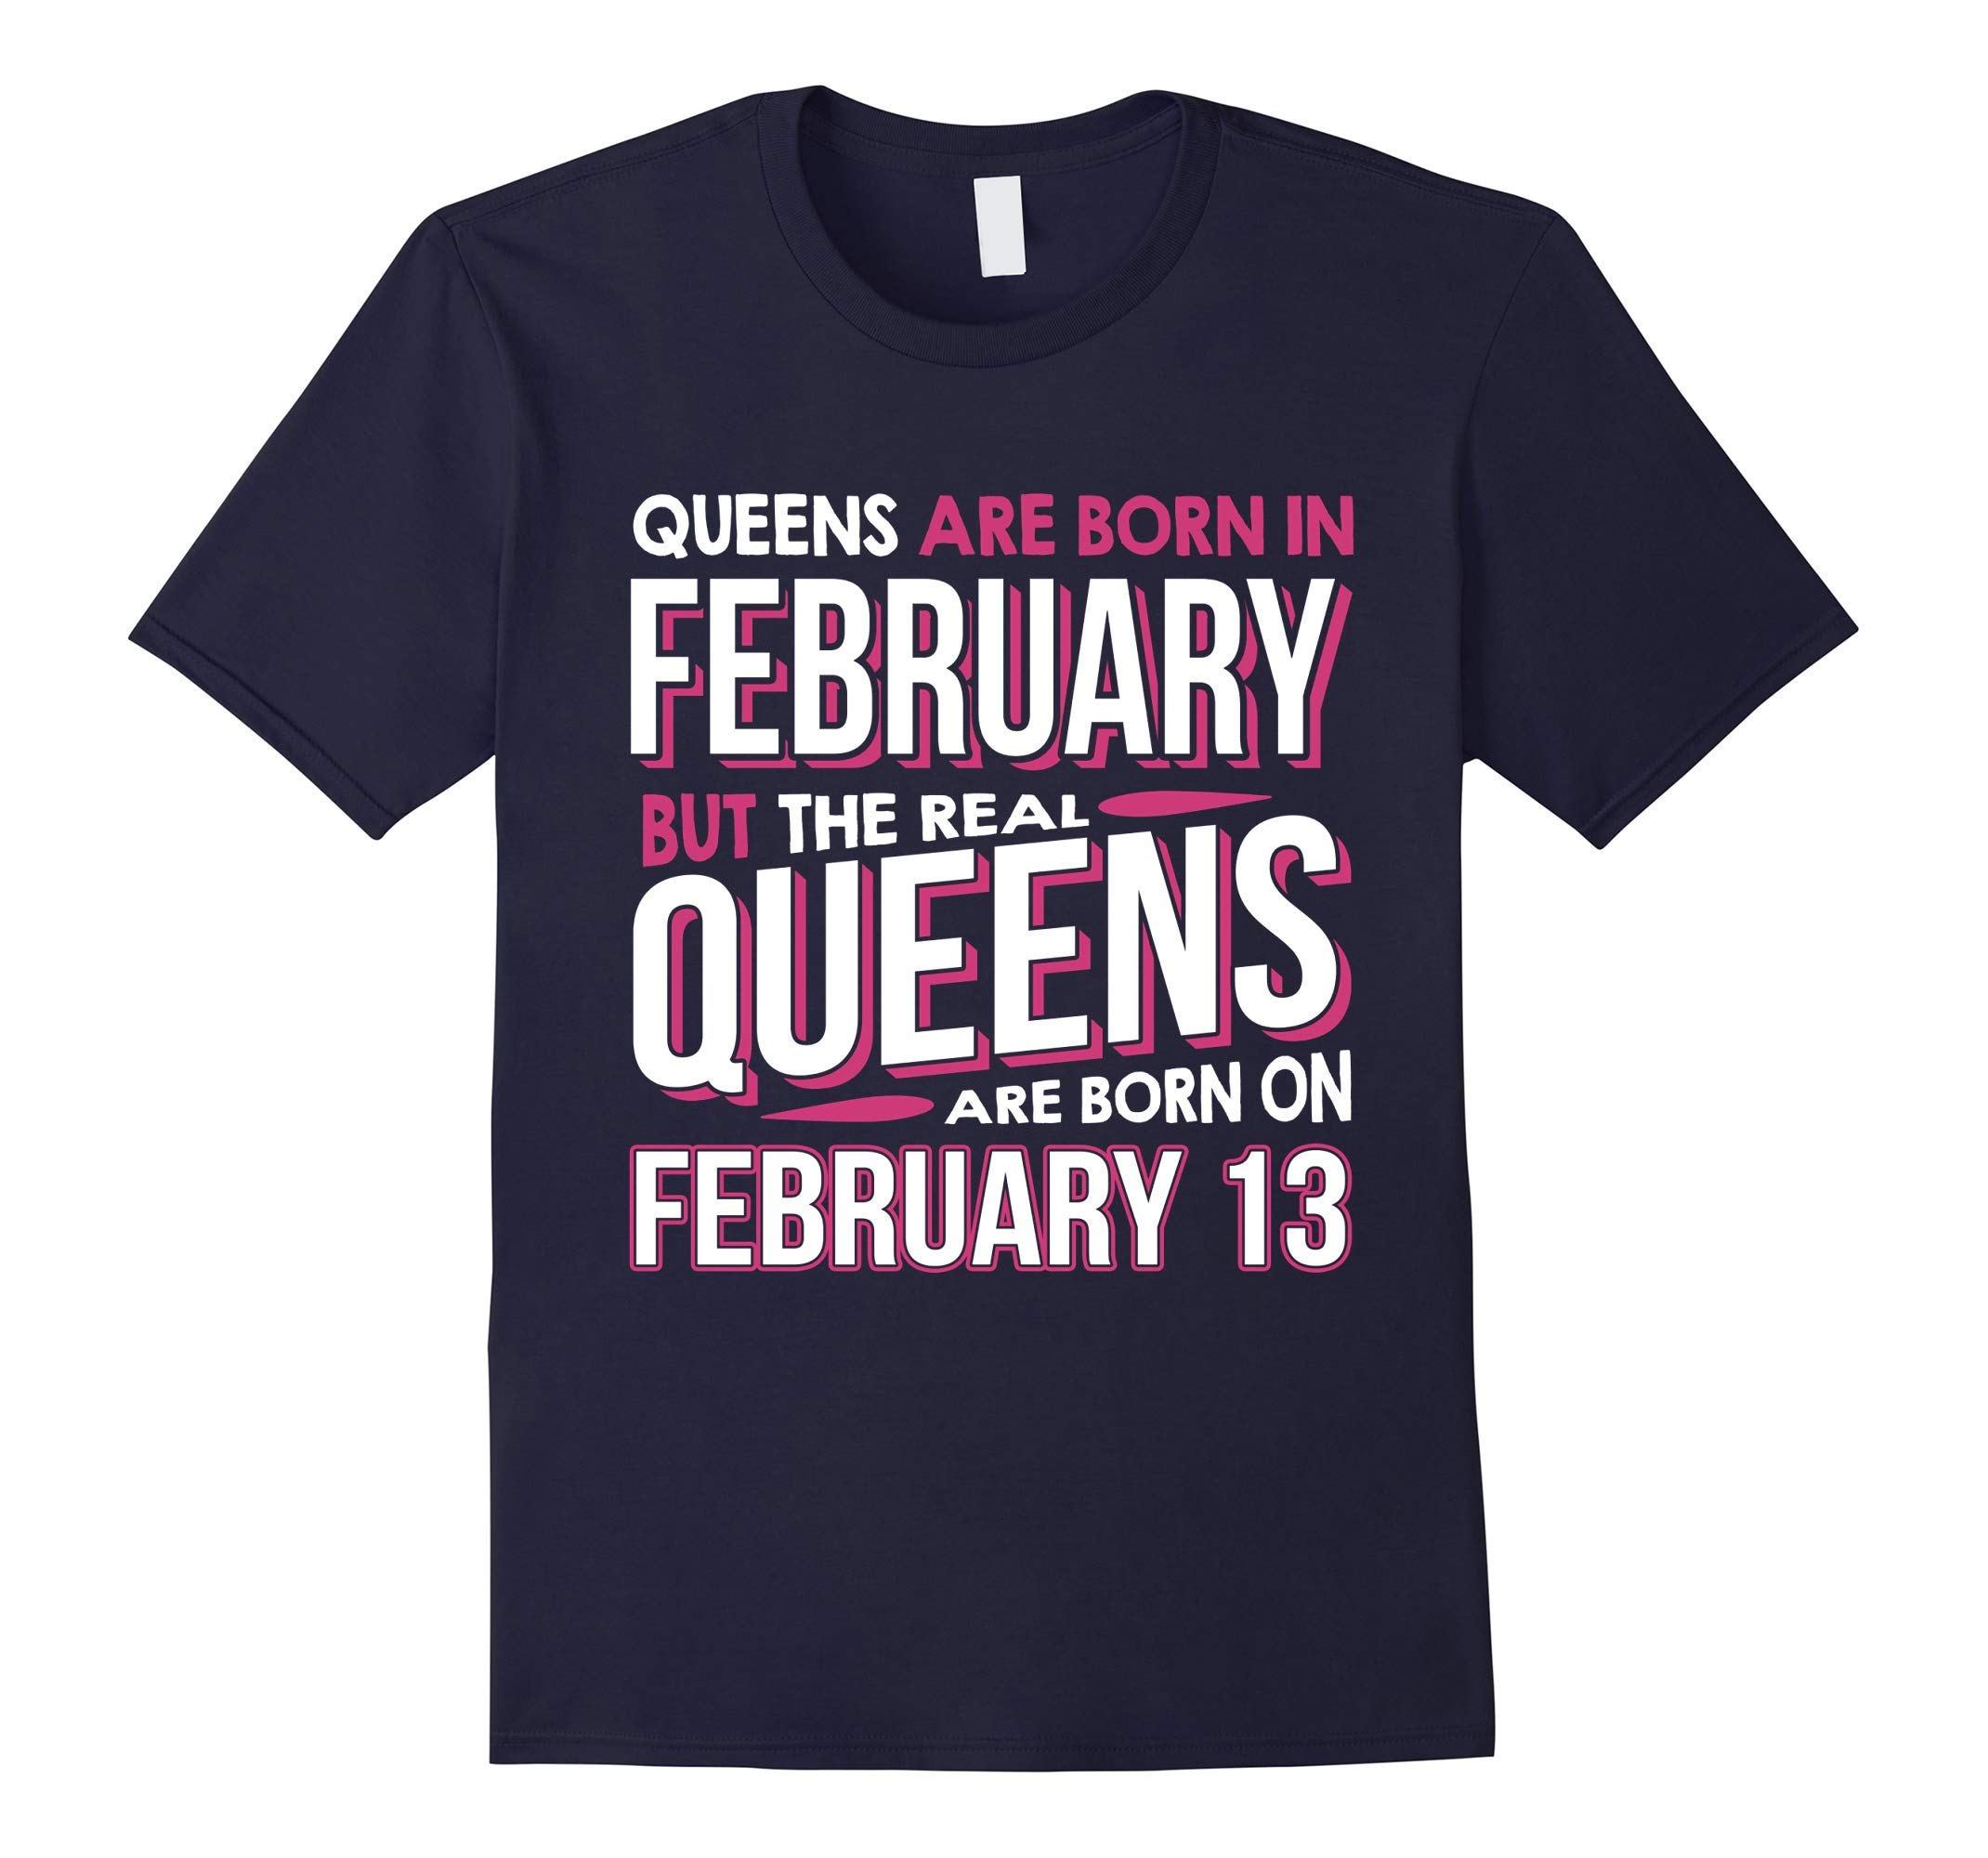 Real Queens Are Born On February 13 Shirts Feb 13th Birthday-RT